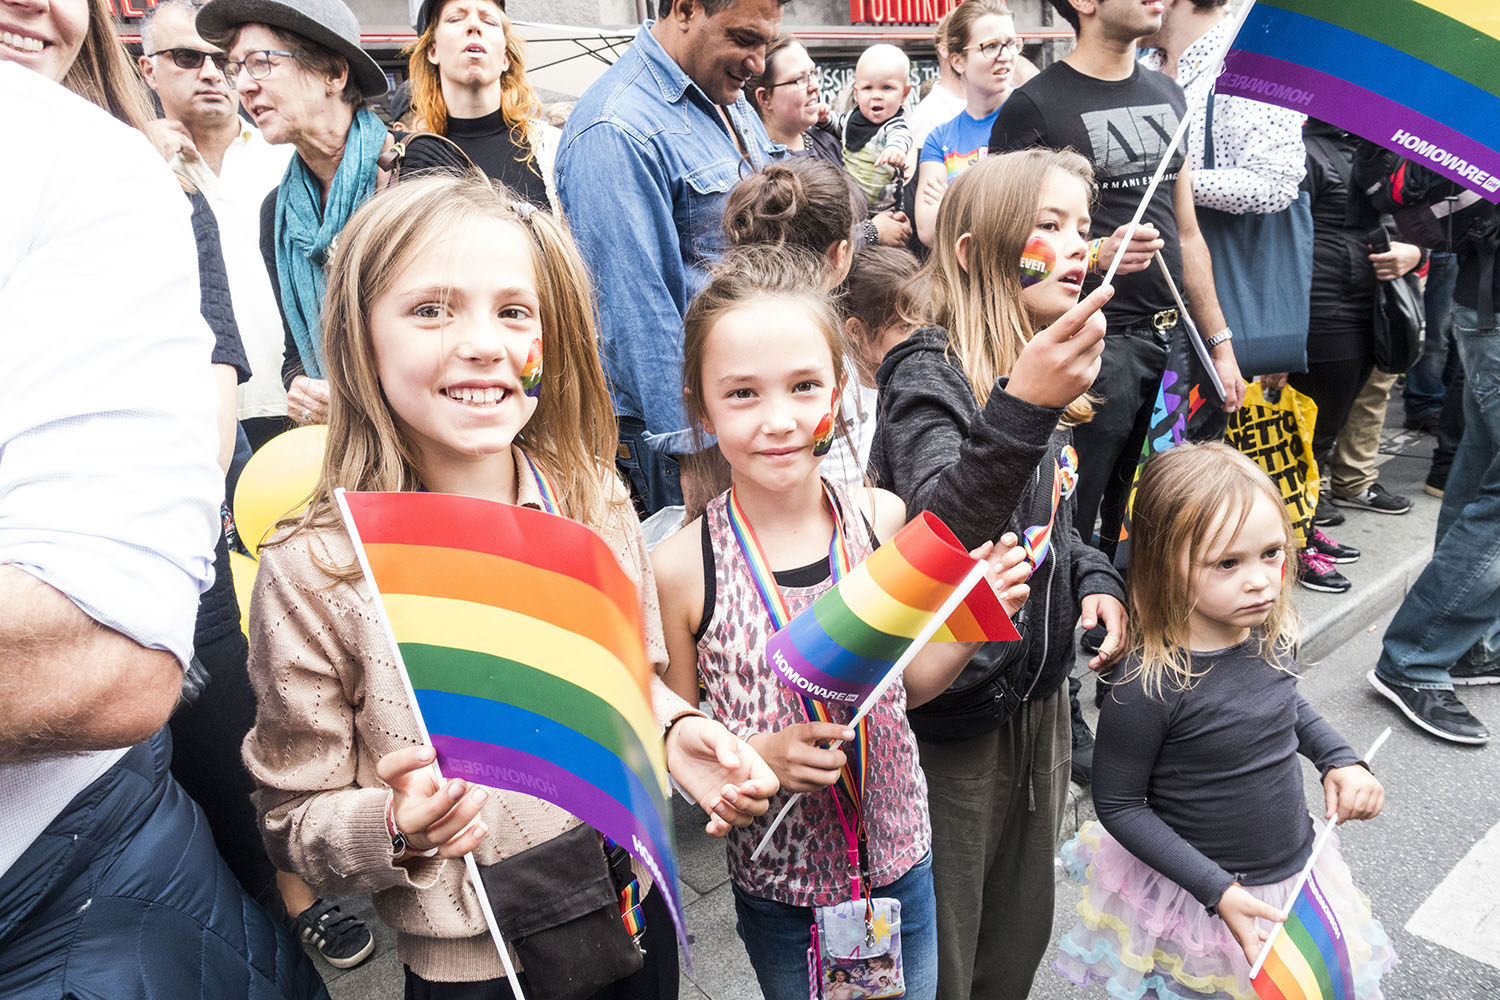 CphPride2016_HelenaLundquist_blog_18